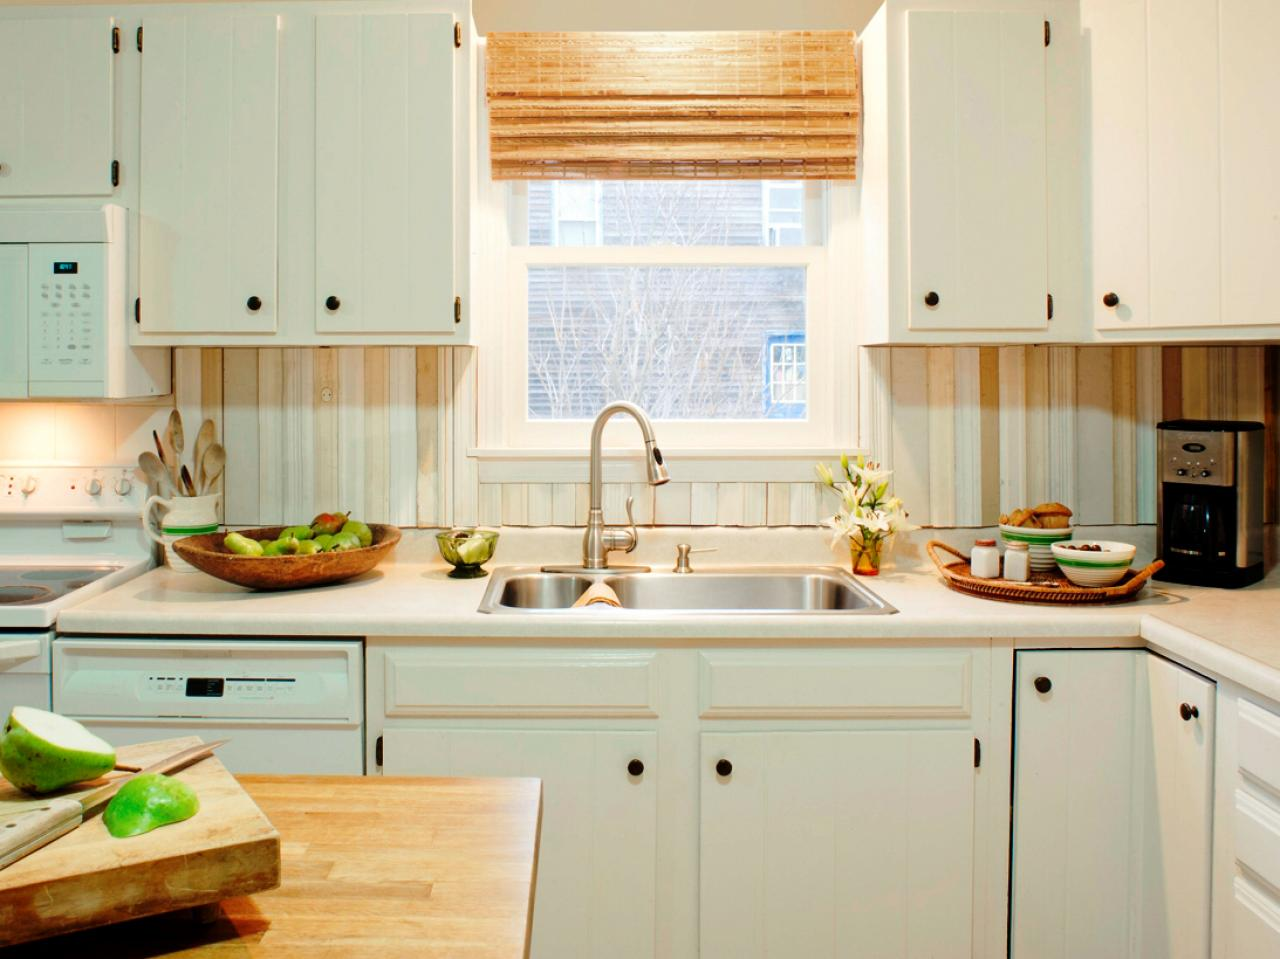 Wood Kitchen Backsplash Ideas Part - 20: Budget Backsplash Project: Cottage-Style Salvaged Molding